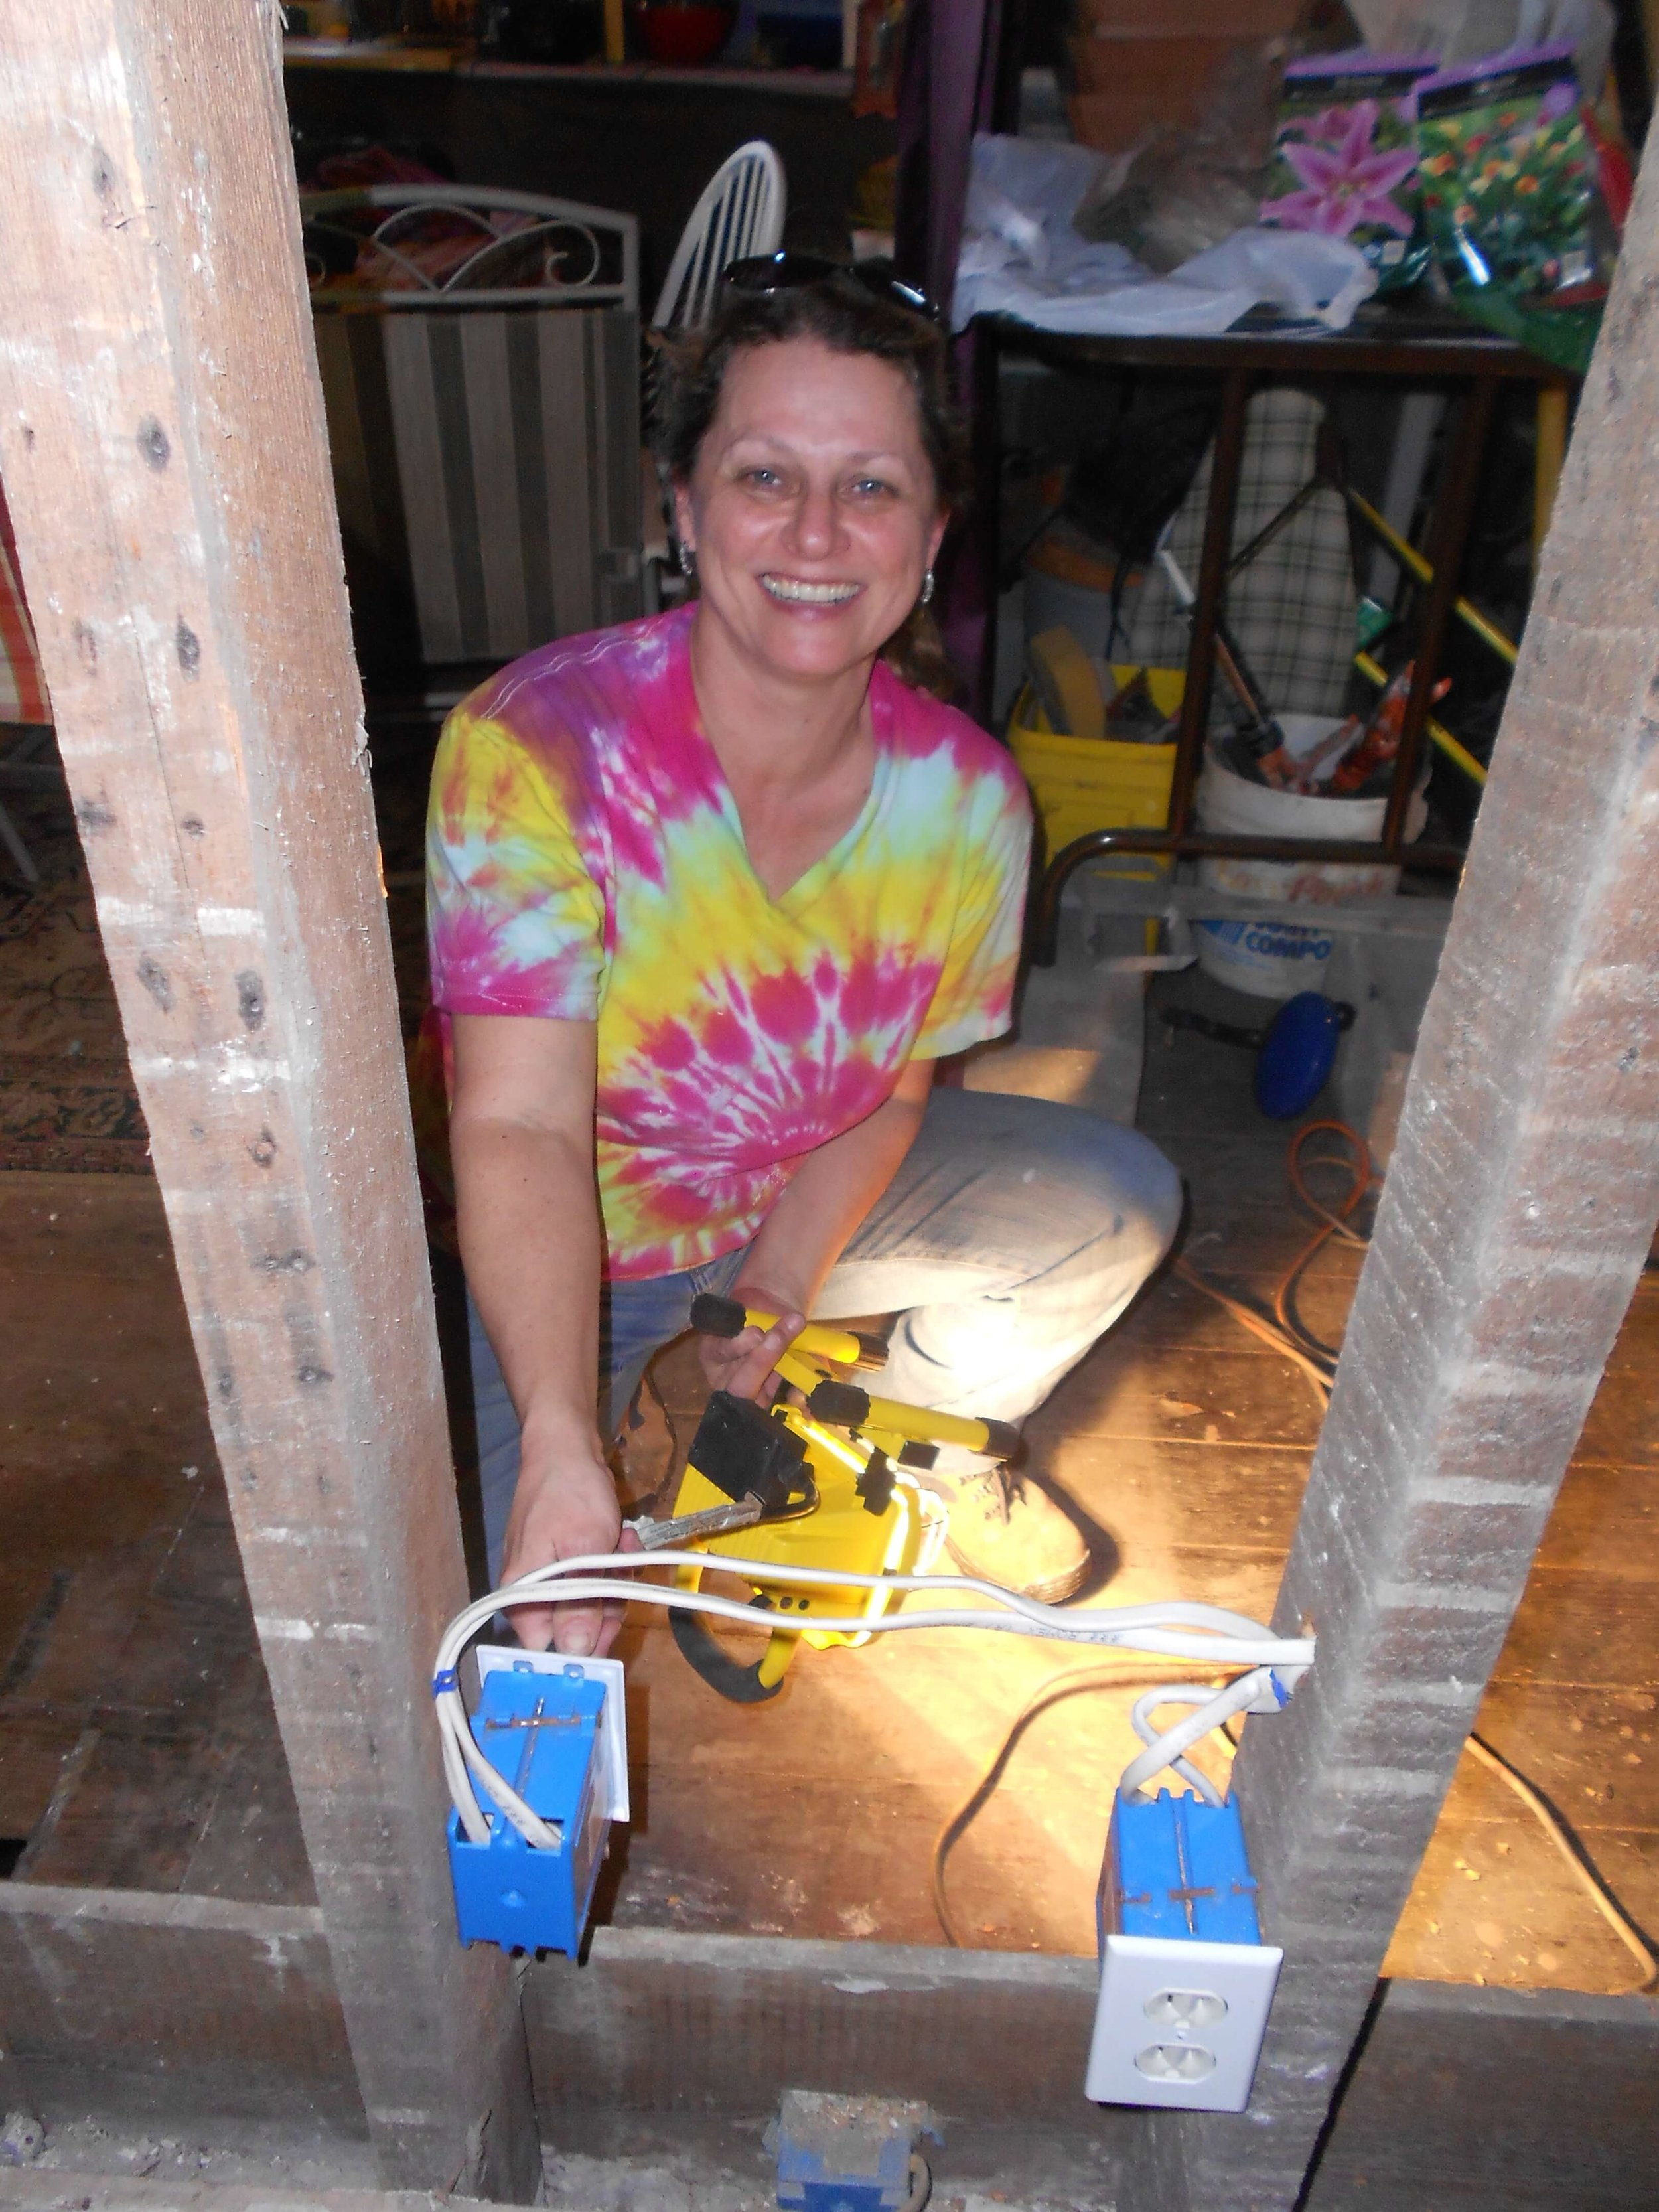 This is one of my PBL projects in action. I'm working at a home in New Orleans helping rebuild homes destroyed by Hurricane Katrina.